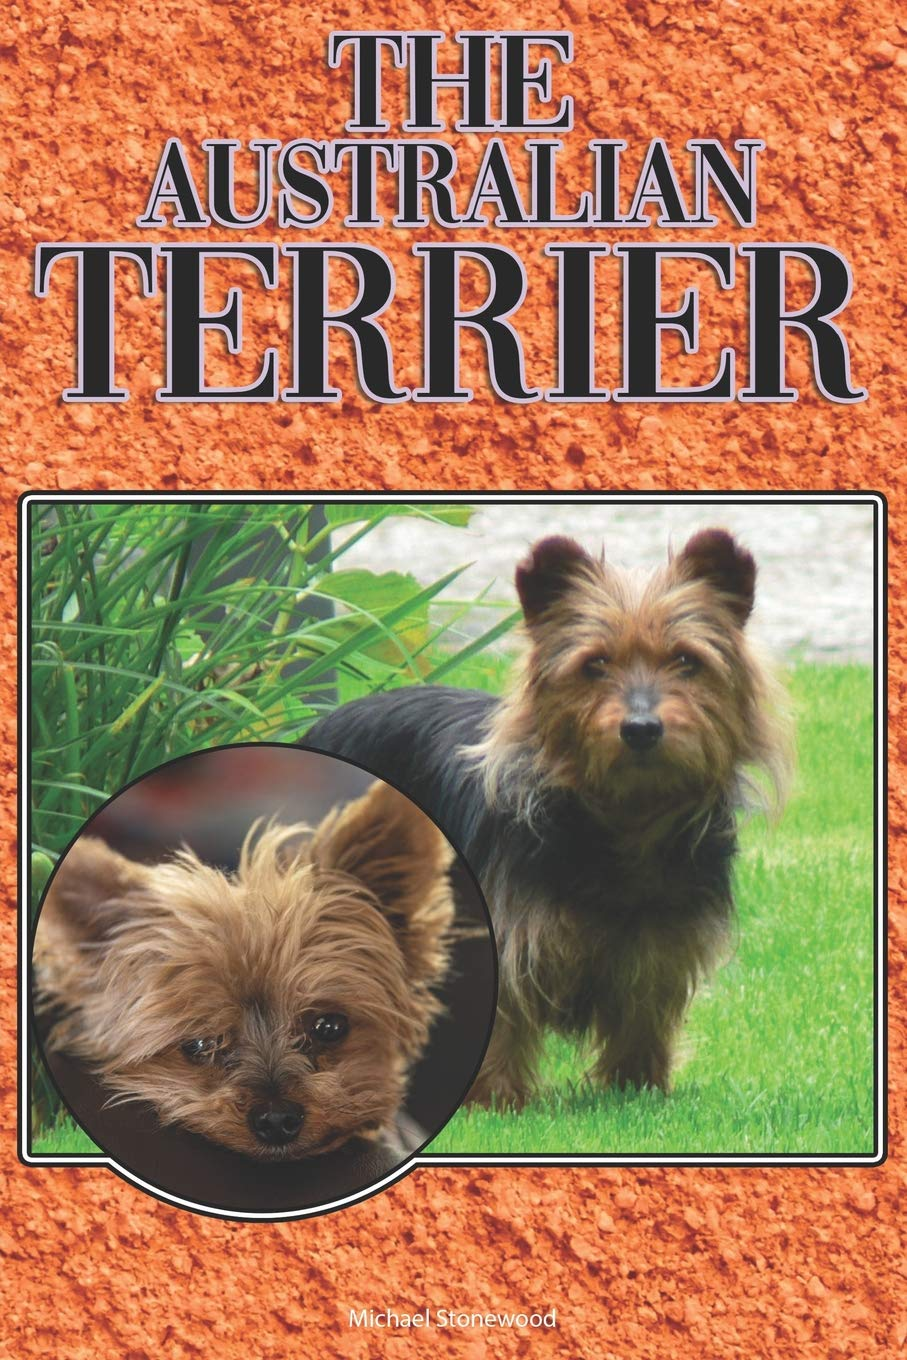 The Australian Terrier: A Complete and Comprehensive Beginners Guide to: Buying, Owning, Health, Grooming, Training, Obedience, Understanding and Caring for Your Australian Terrier